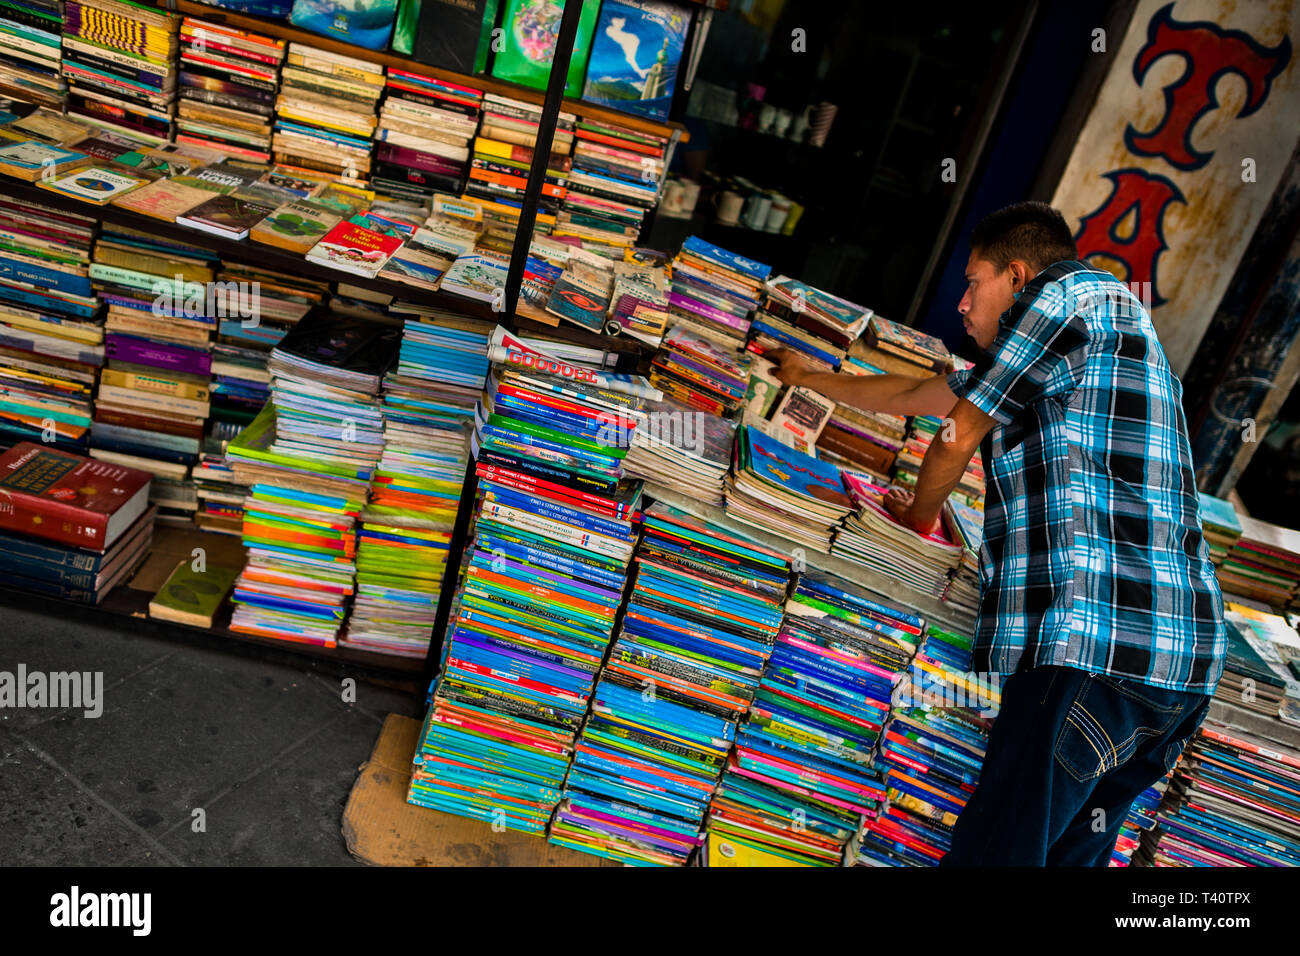 A Salvadoran bookseller arranges piles of used books stacked on the street in a secondhand bookshop in San Salvador, El Salvador. - Stock Image